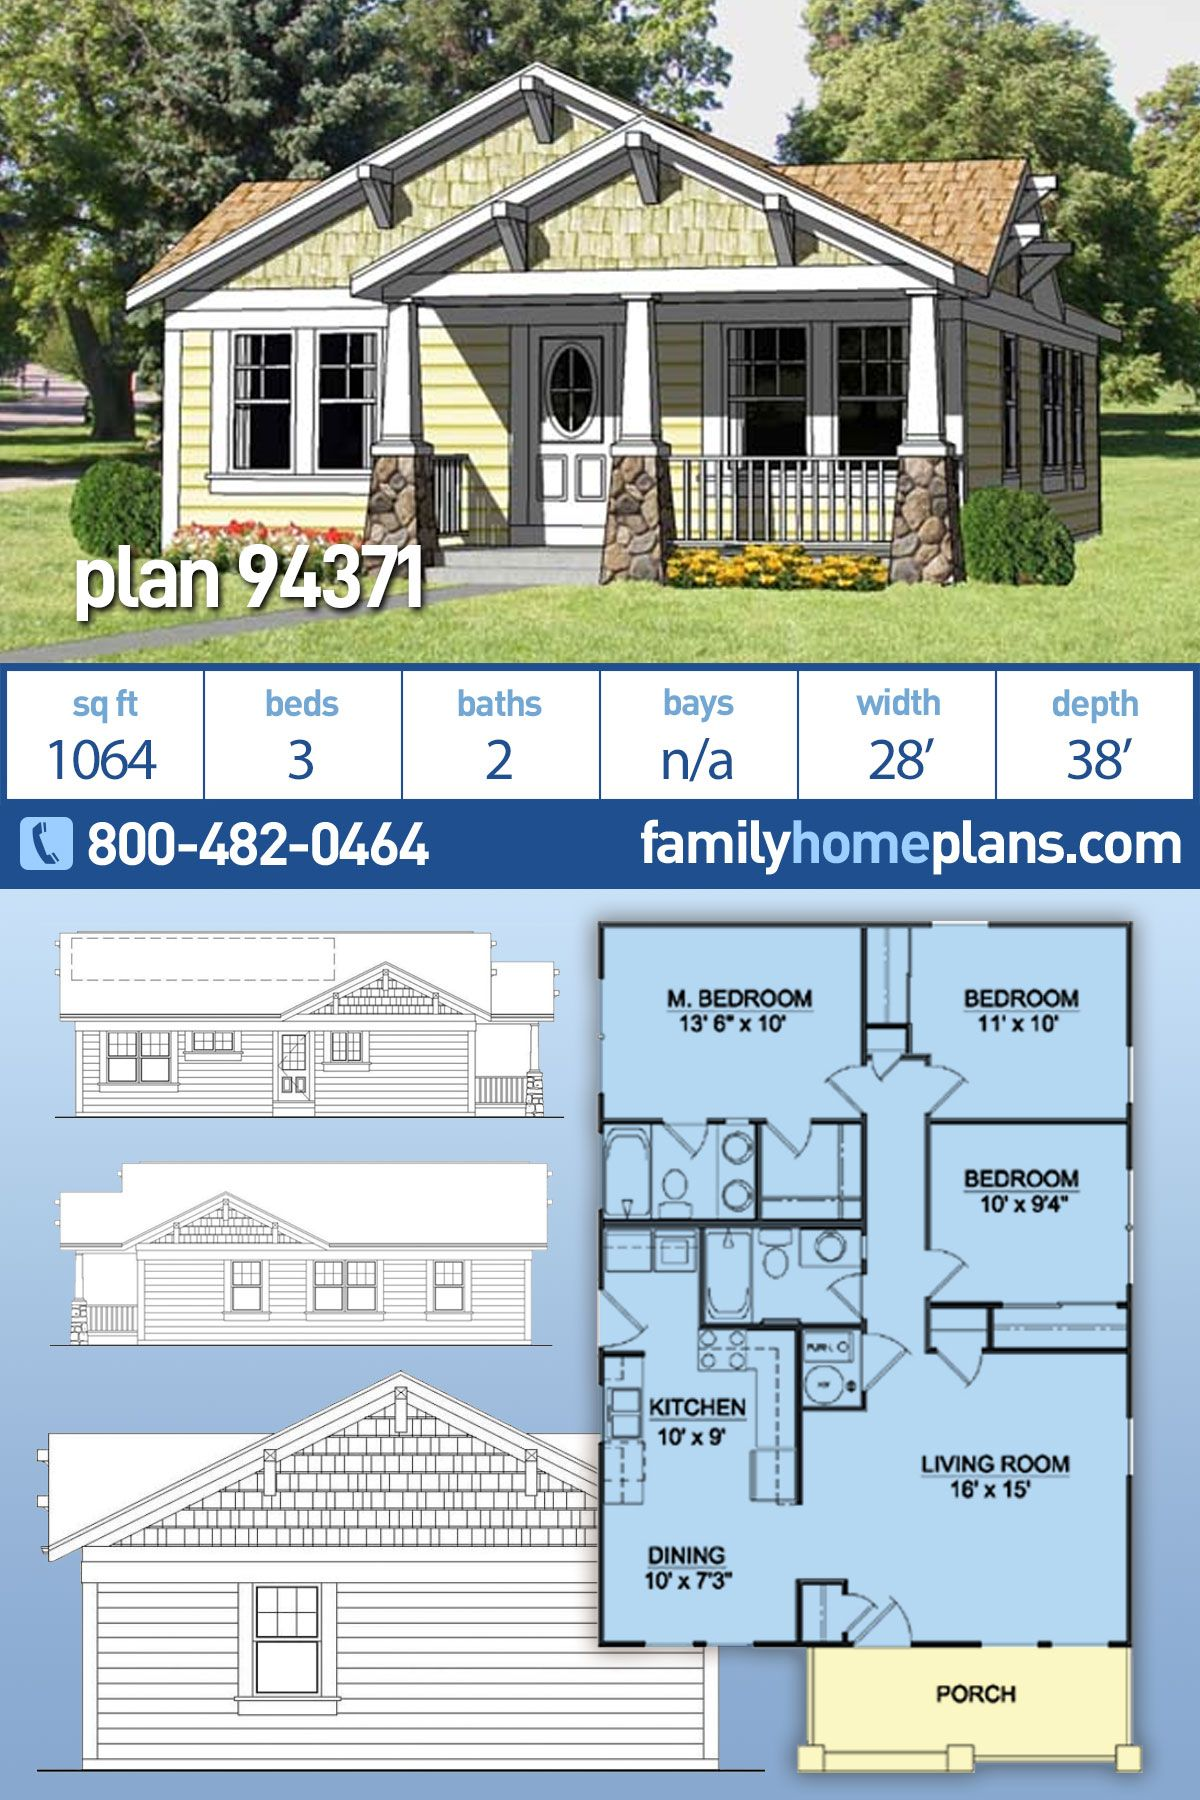 Craftsman Style House Plan 94371 With 3 Bed 2 Bath Small Craftsman House Plans Craftsman Style House Plans Cottage Plan